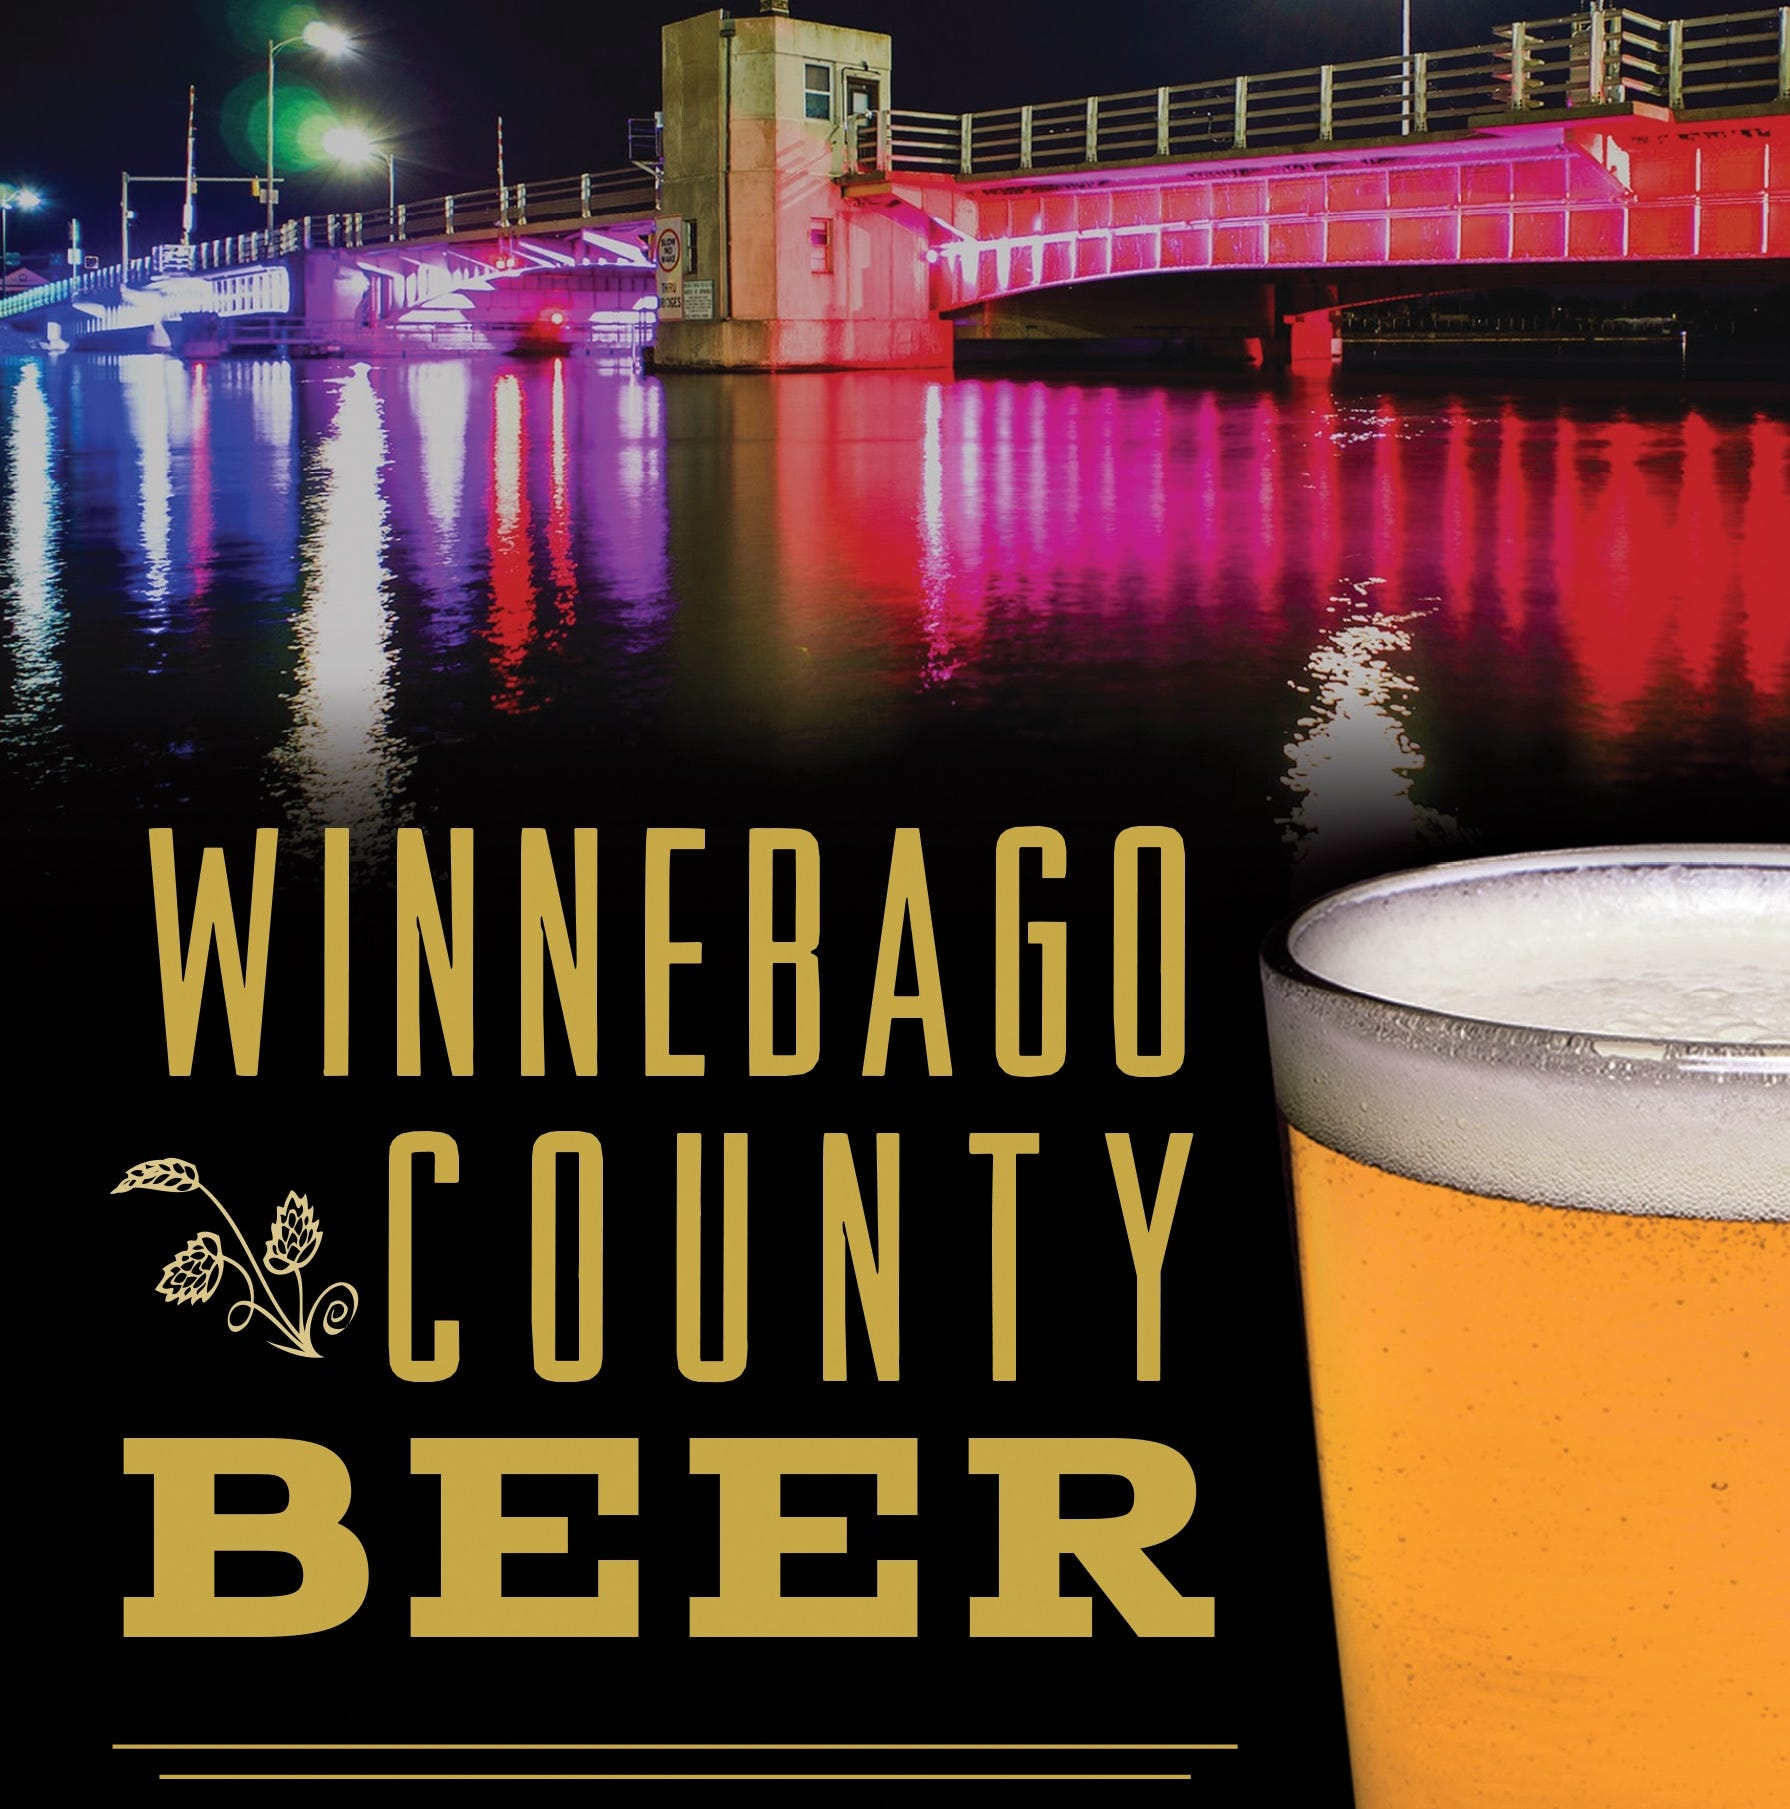 Winnebago County beer book unearths fascinating local brewing history